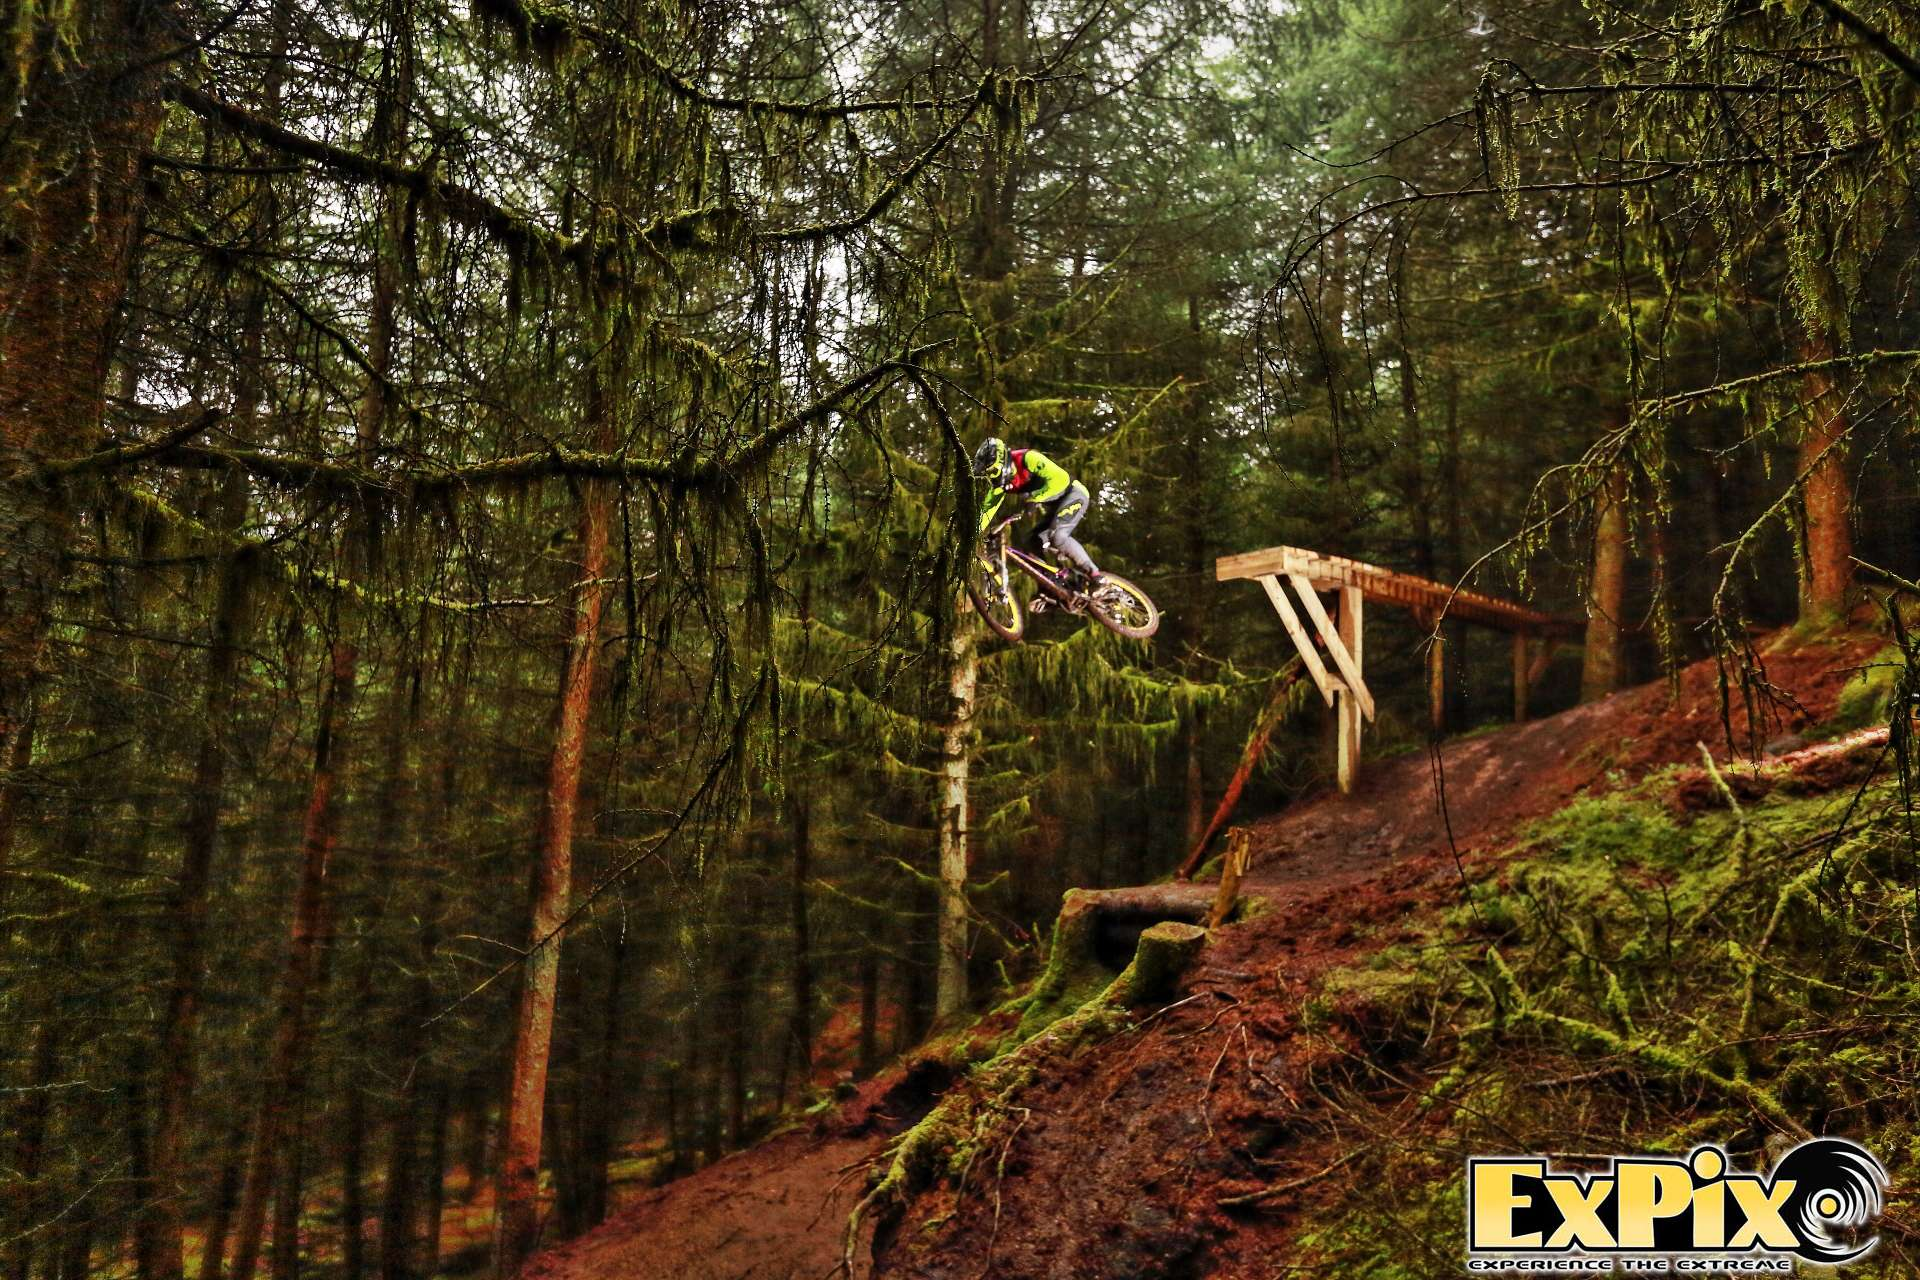 Valhala trail drop in at Havok BikePark